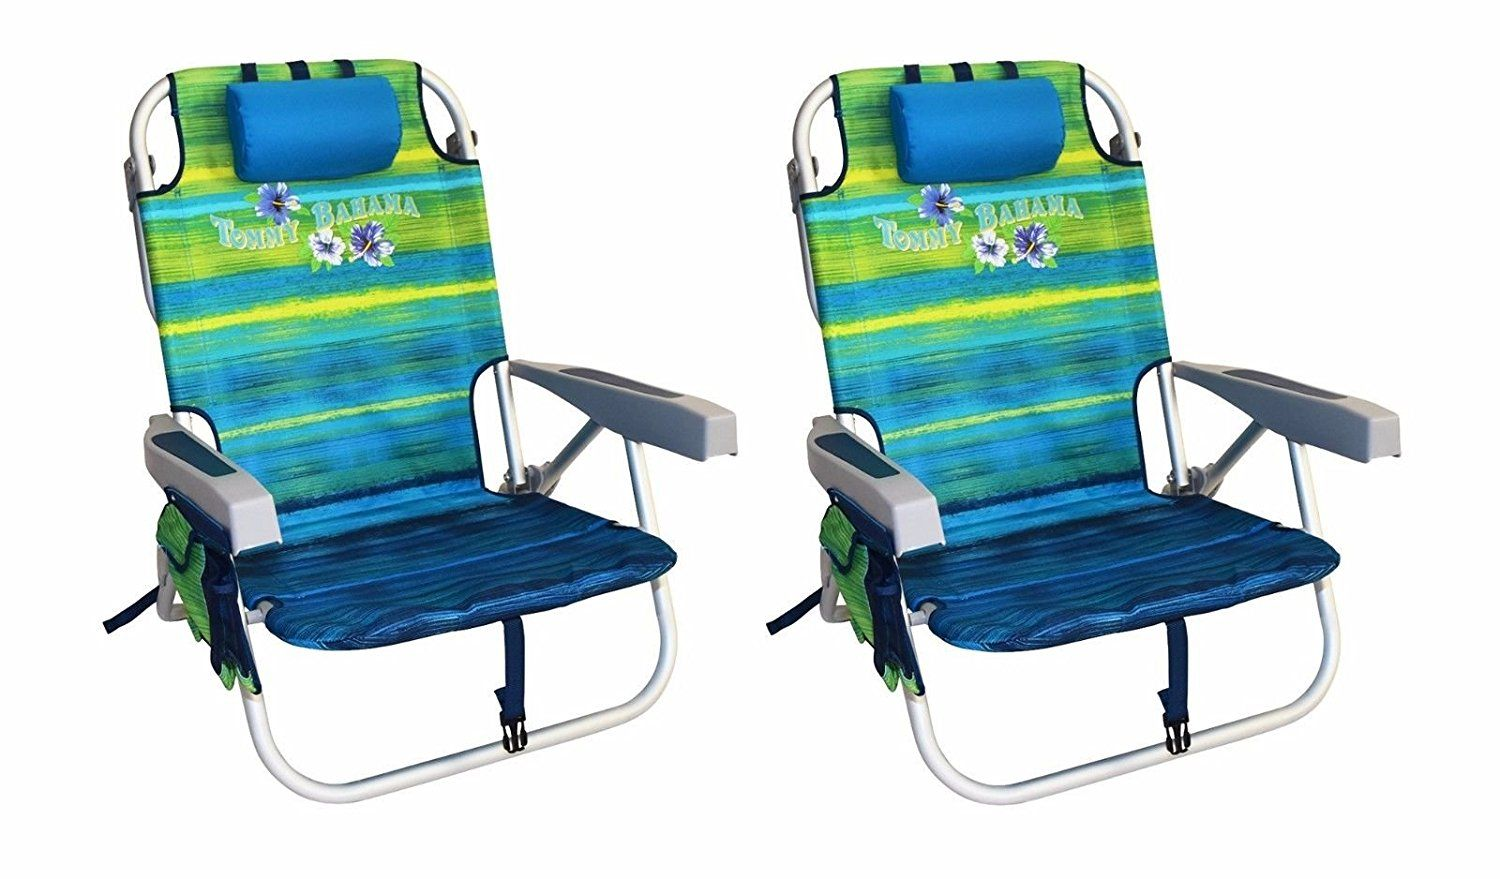 2 Tommy Bahama Backpack Cooler Beach Chairs Green New This Is An Affiliate Link Click Image To Review More Details